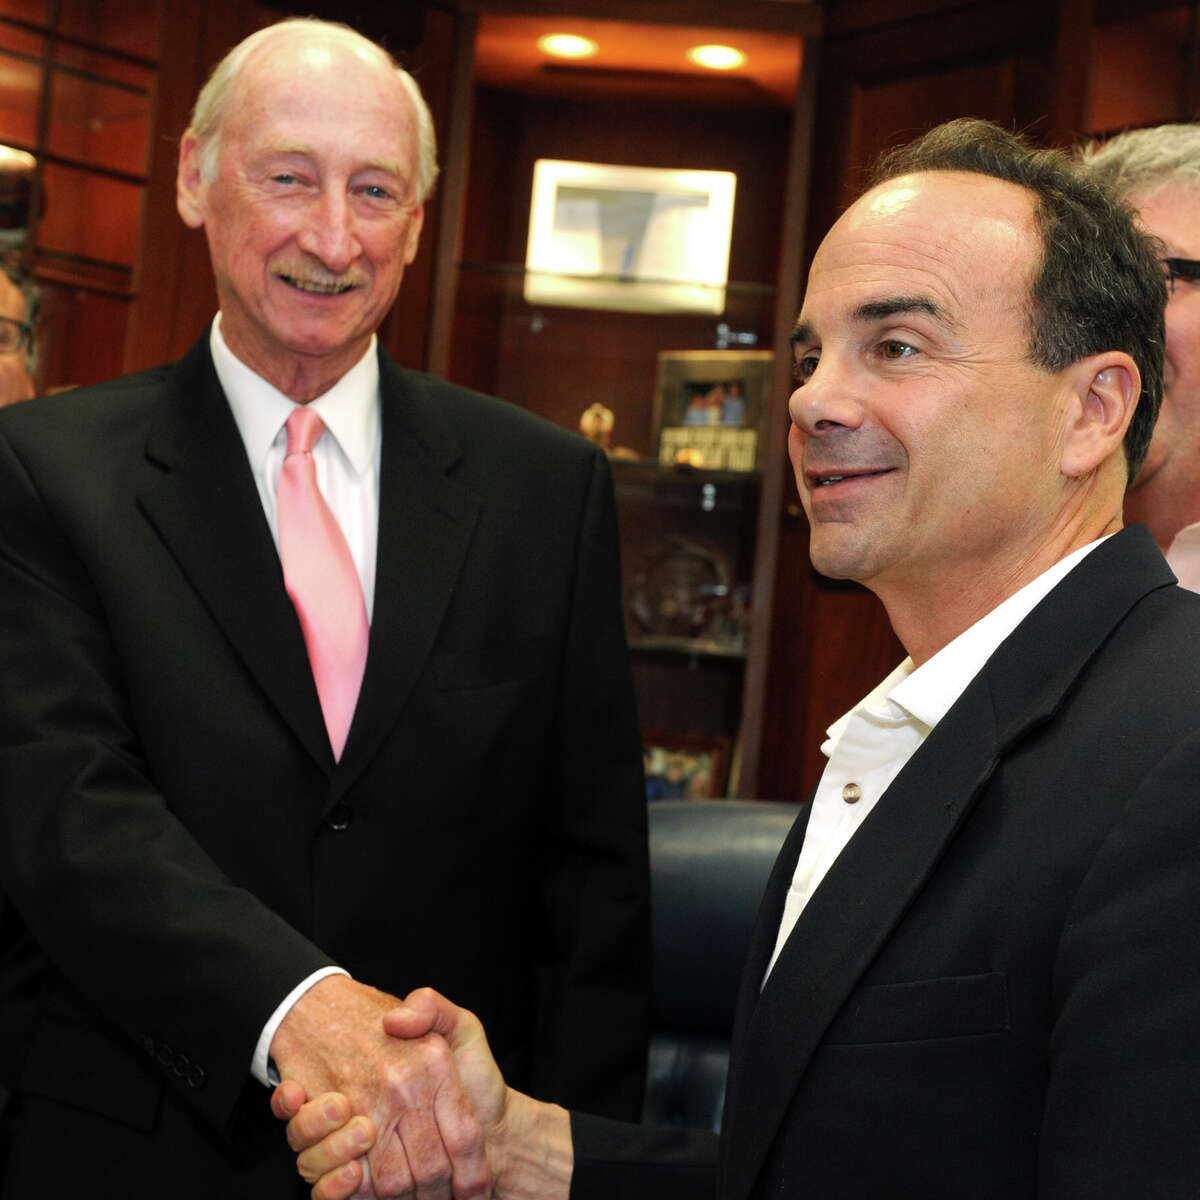 Mayor Joe Ganim, right, shakes hands with Thomas Gill, who has been chosen as the new economic development director for the City of Bridgeport, July 18, 2016.